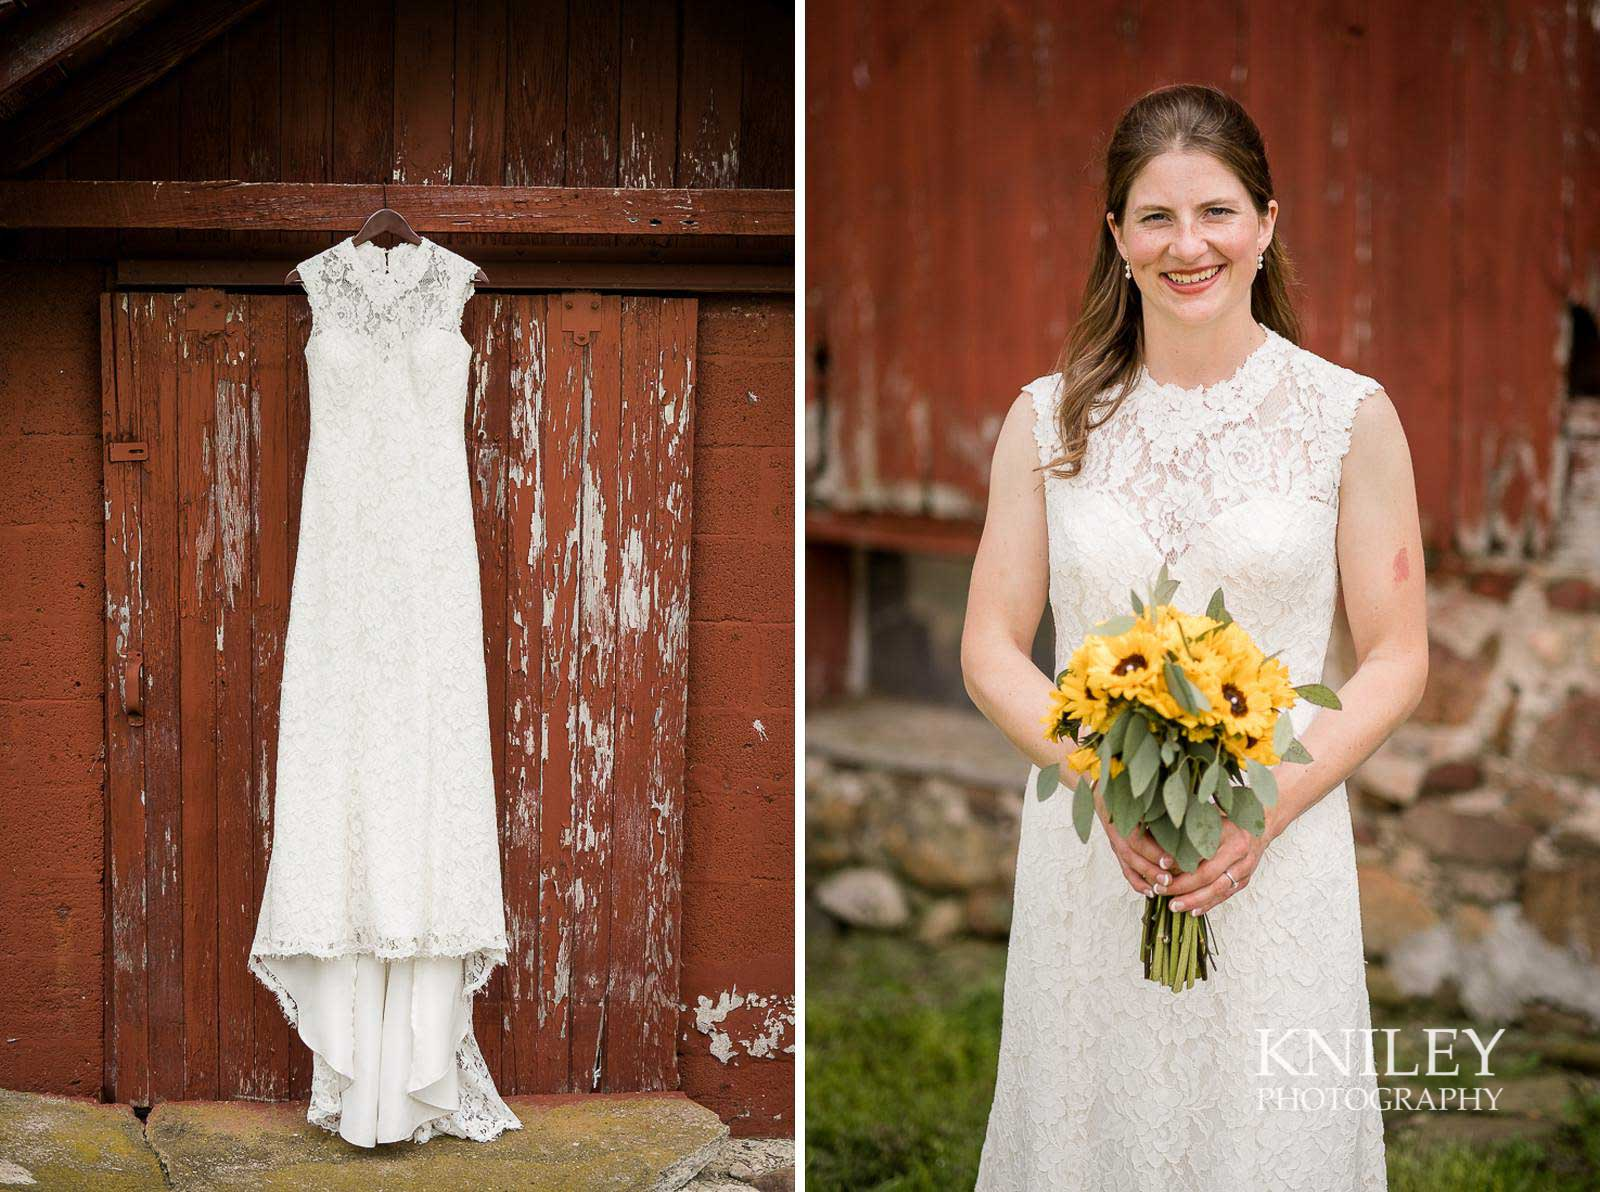 09-Western-New-York-farm-wedding-Kniley-Photography.jpg